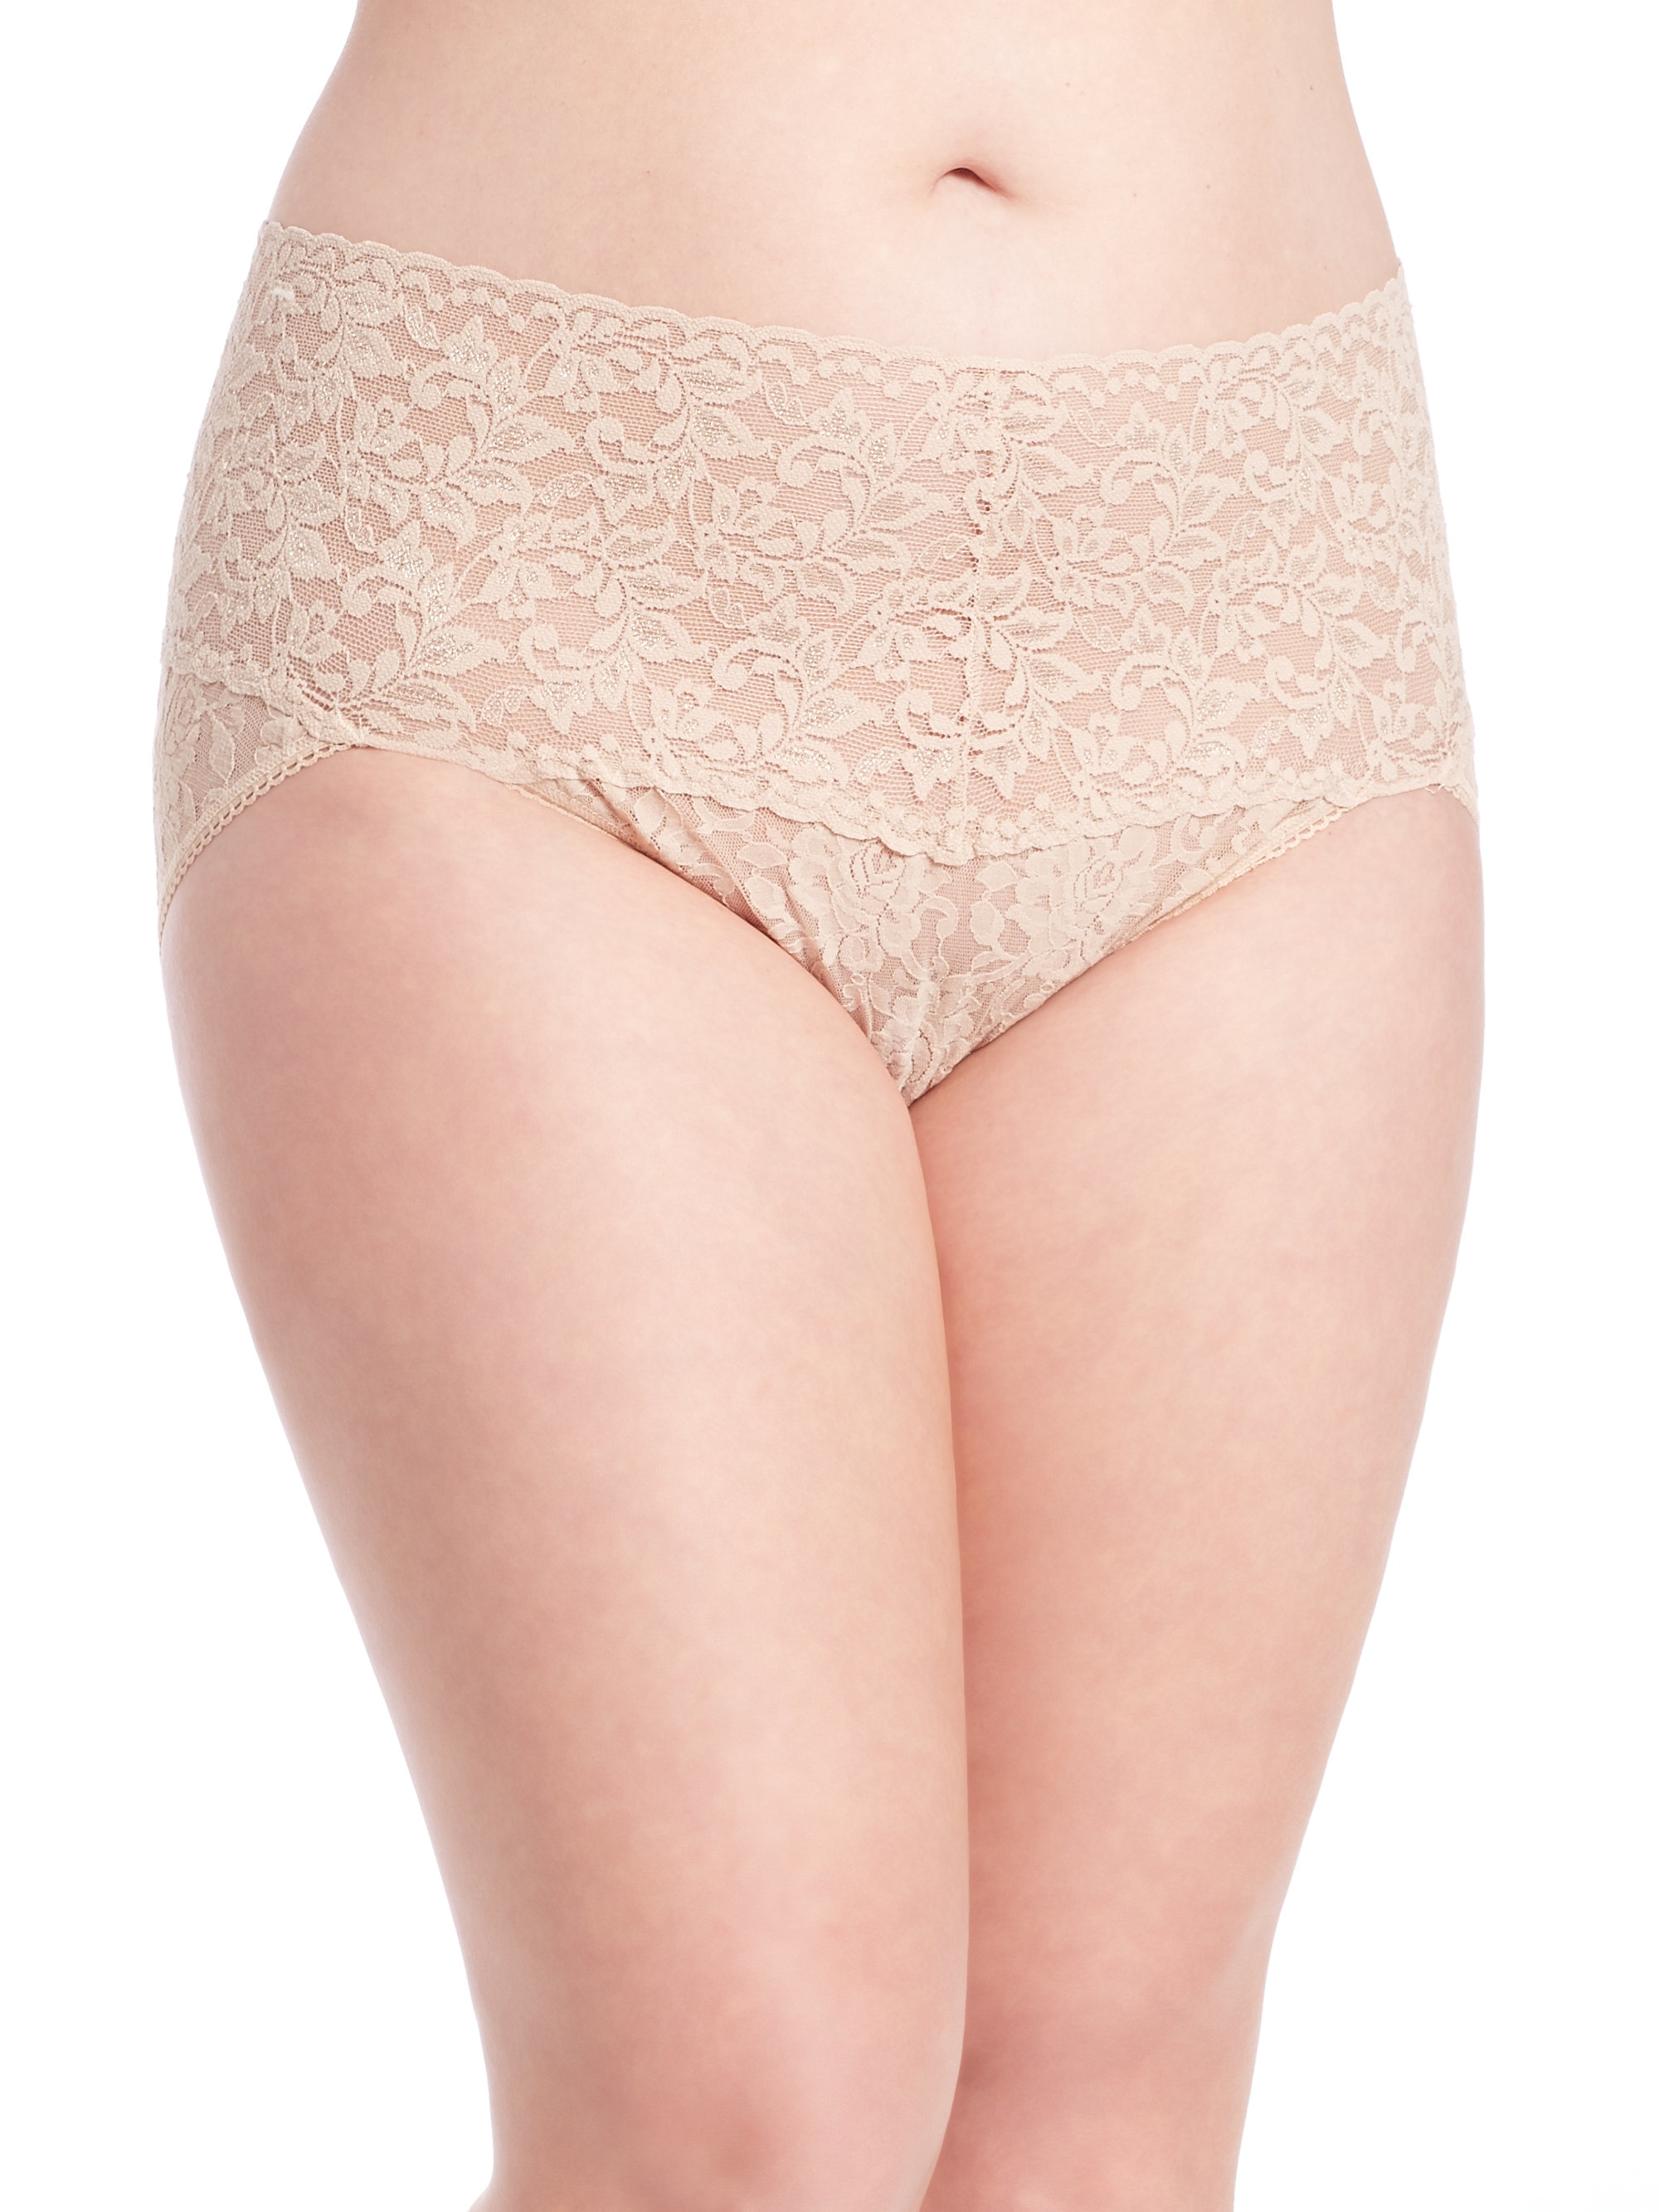 Sears plus beige panties